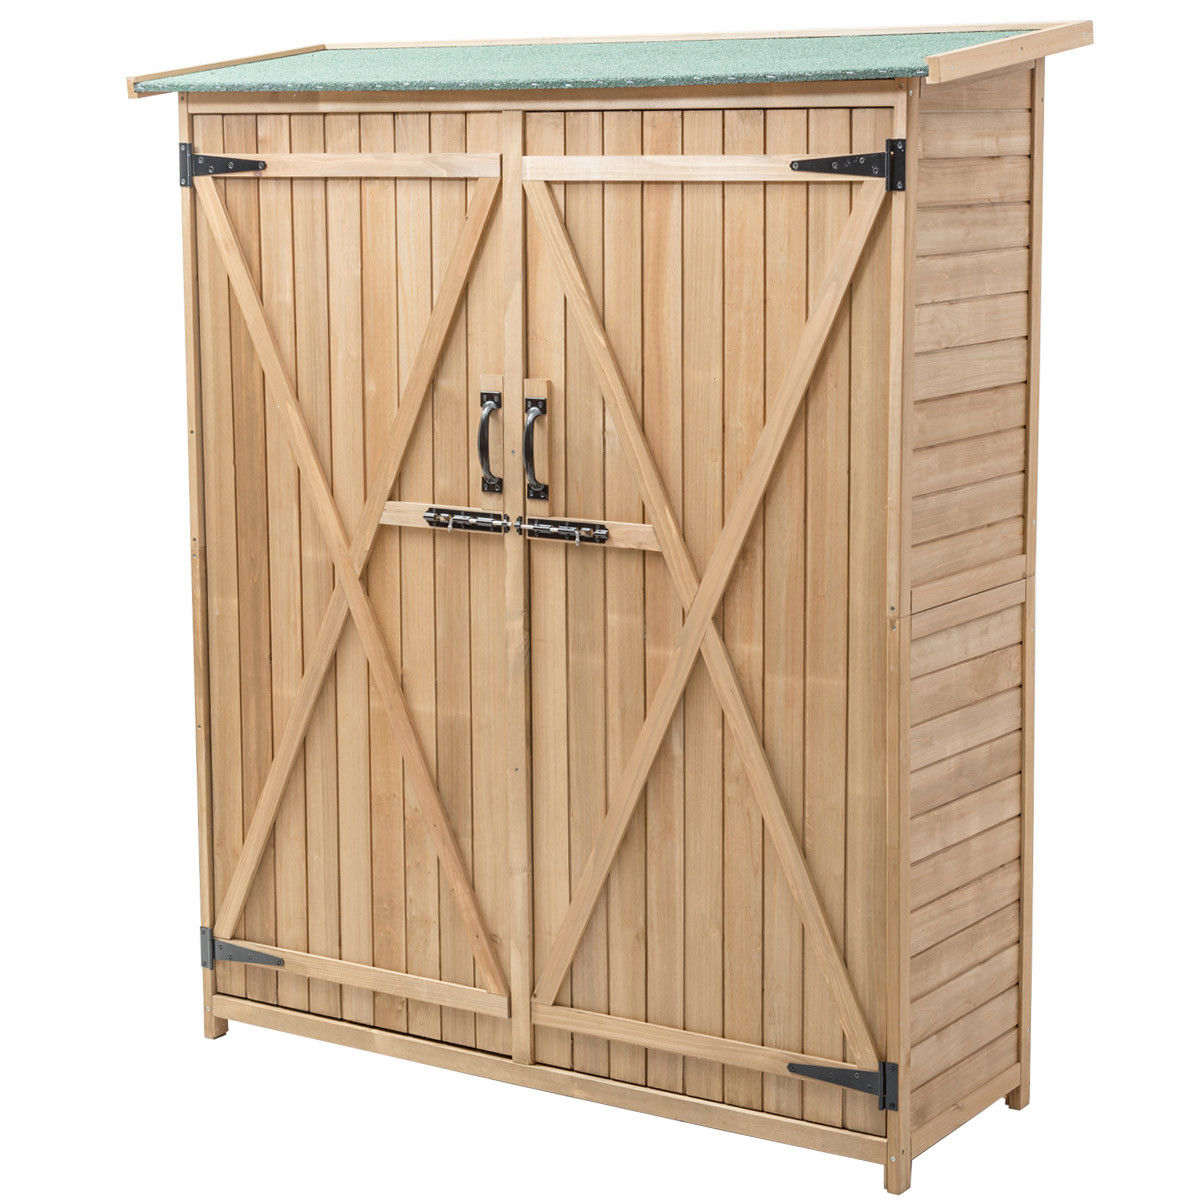 "GHP Home 56""L×20""W×64""H Durable Waterproof Fir Wood Garden Storage Shed Cabinet"